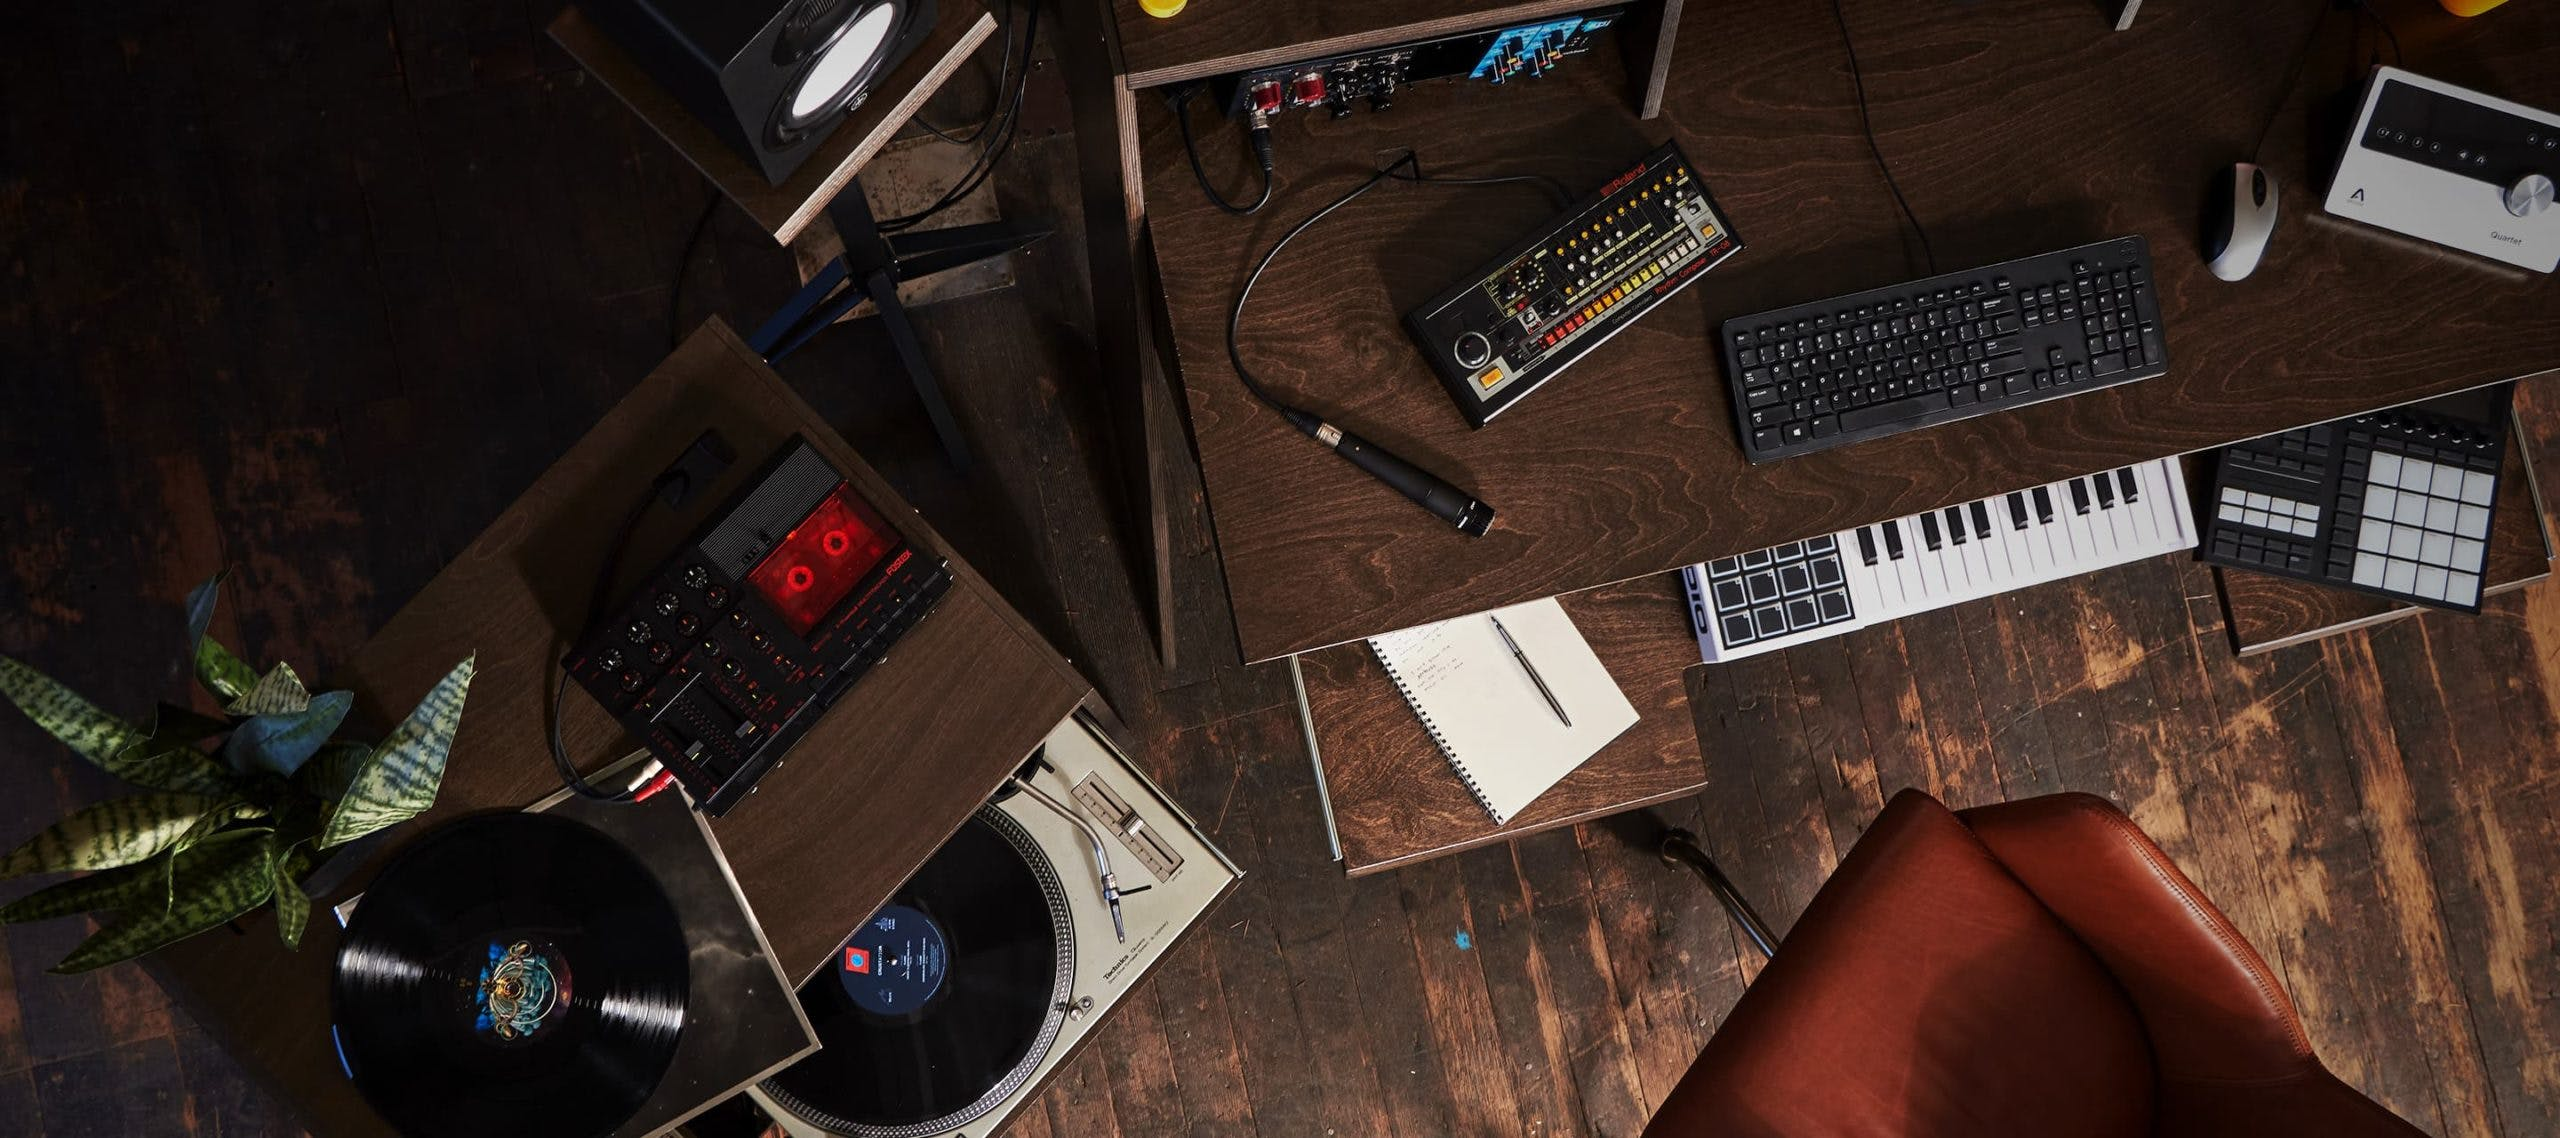 Aerial view of studio setup with brown Output Platform desk, brown Output Sidecar accessory holding turntable, MIDI controller, and keyboard.